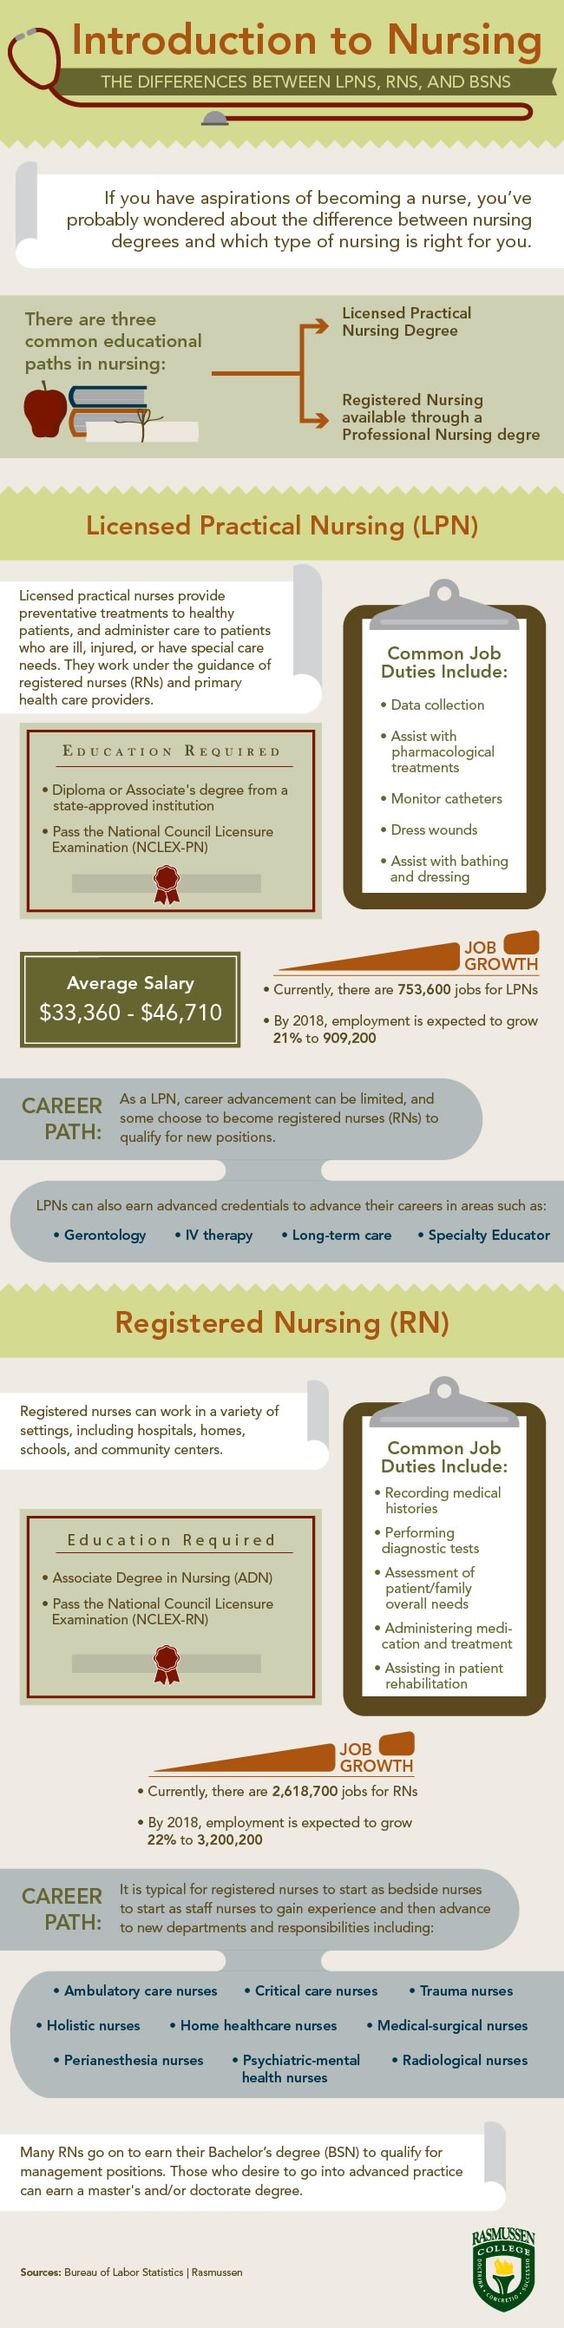 I wanna be a neonatal physician's assistant, what should i major in as an undergraduate?